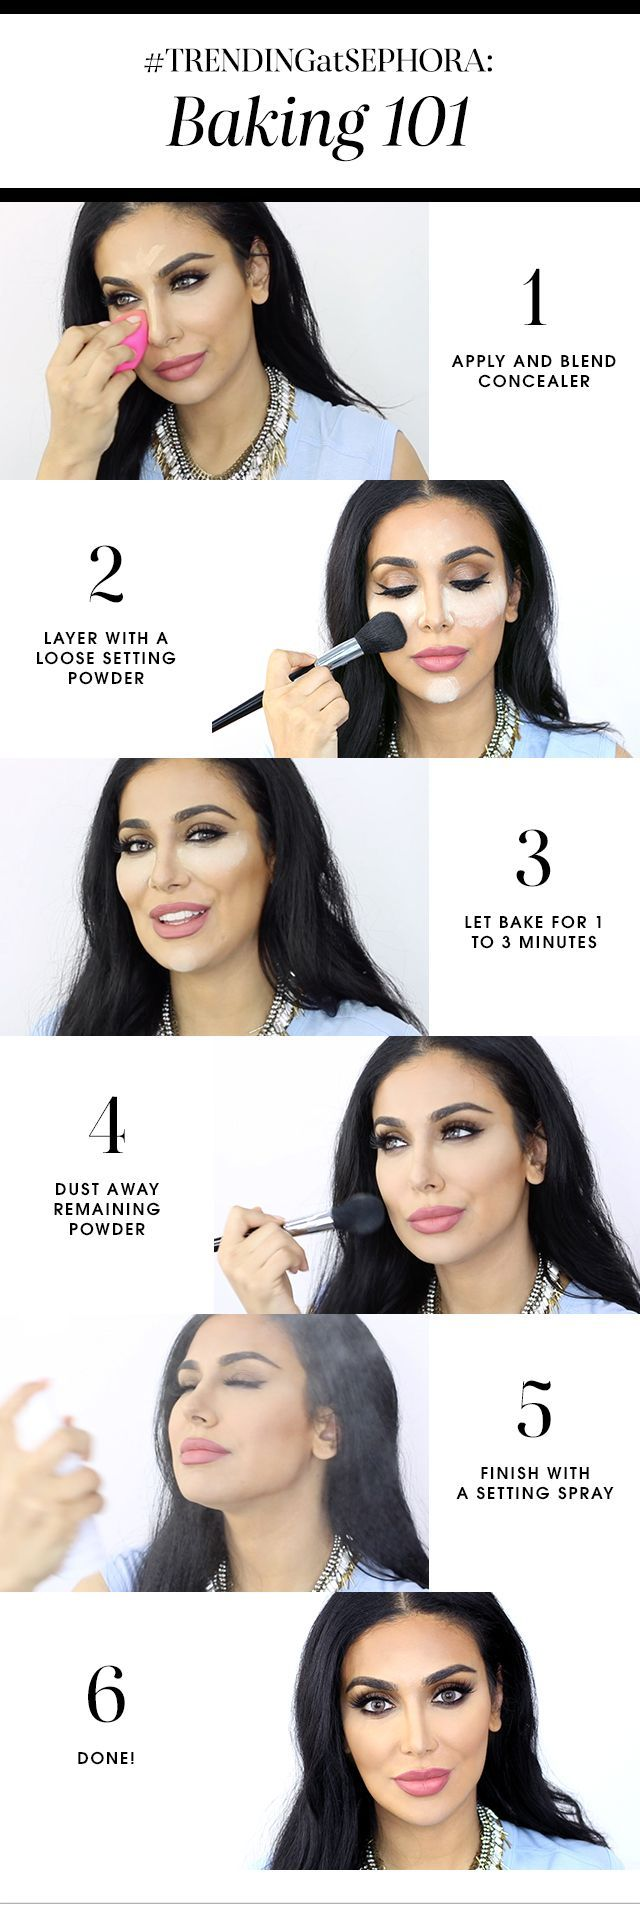 #MakeupBaking isn't going anywhere. Here's how to nail the technique: http://seph.me/1OWeyM3  #baking